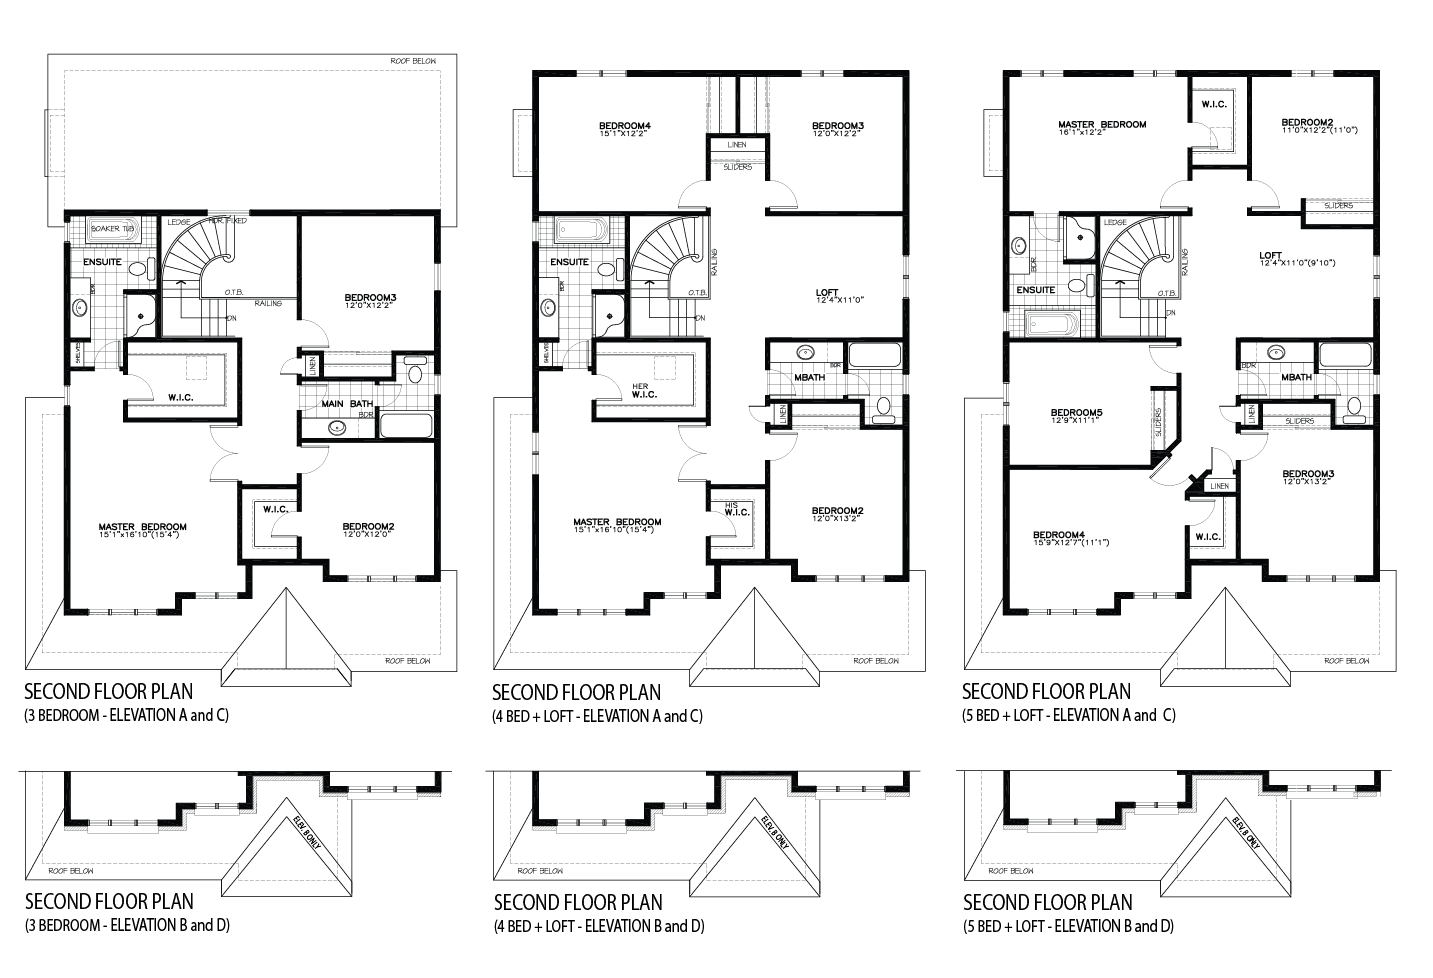 Adirondack Floor Plan moreover Small House Design With Eye Catching Color Game besides Eco Friendly Homes Floor Plans in addition Winchester House Floor Plan further American Craftsman House Plans. on tiny house plans